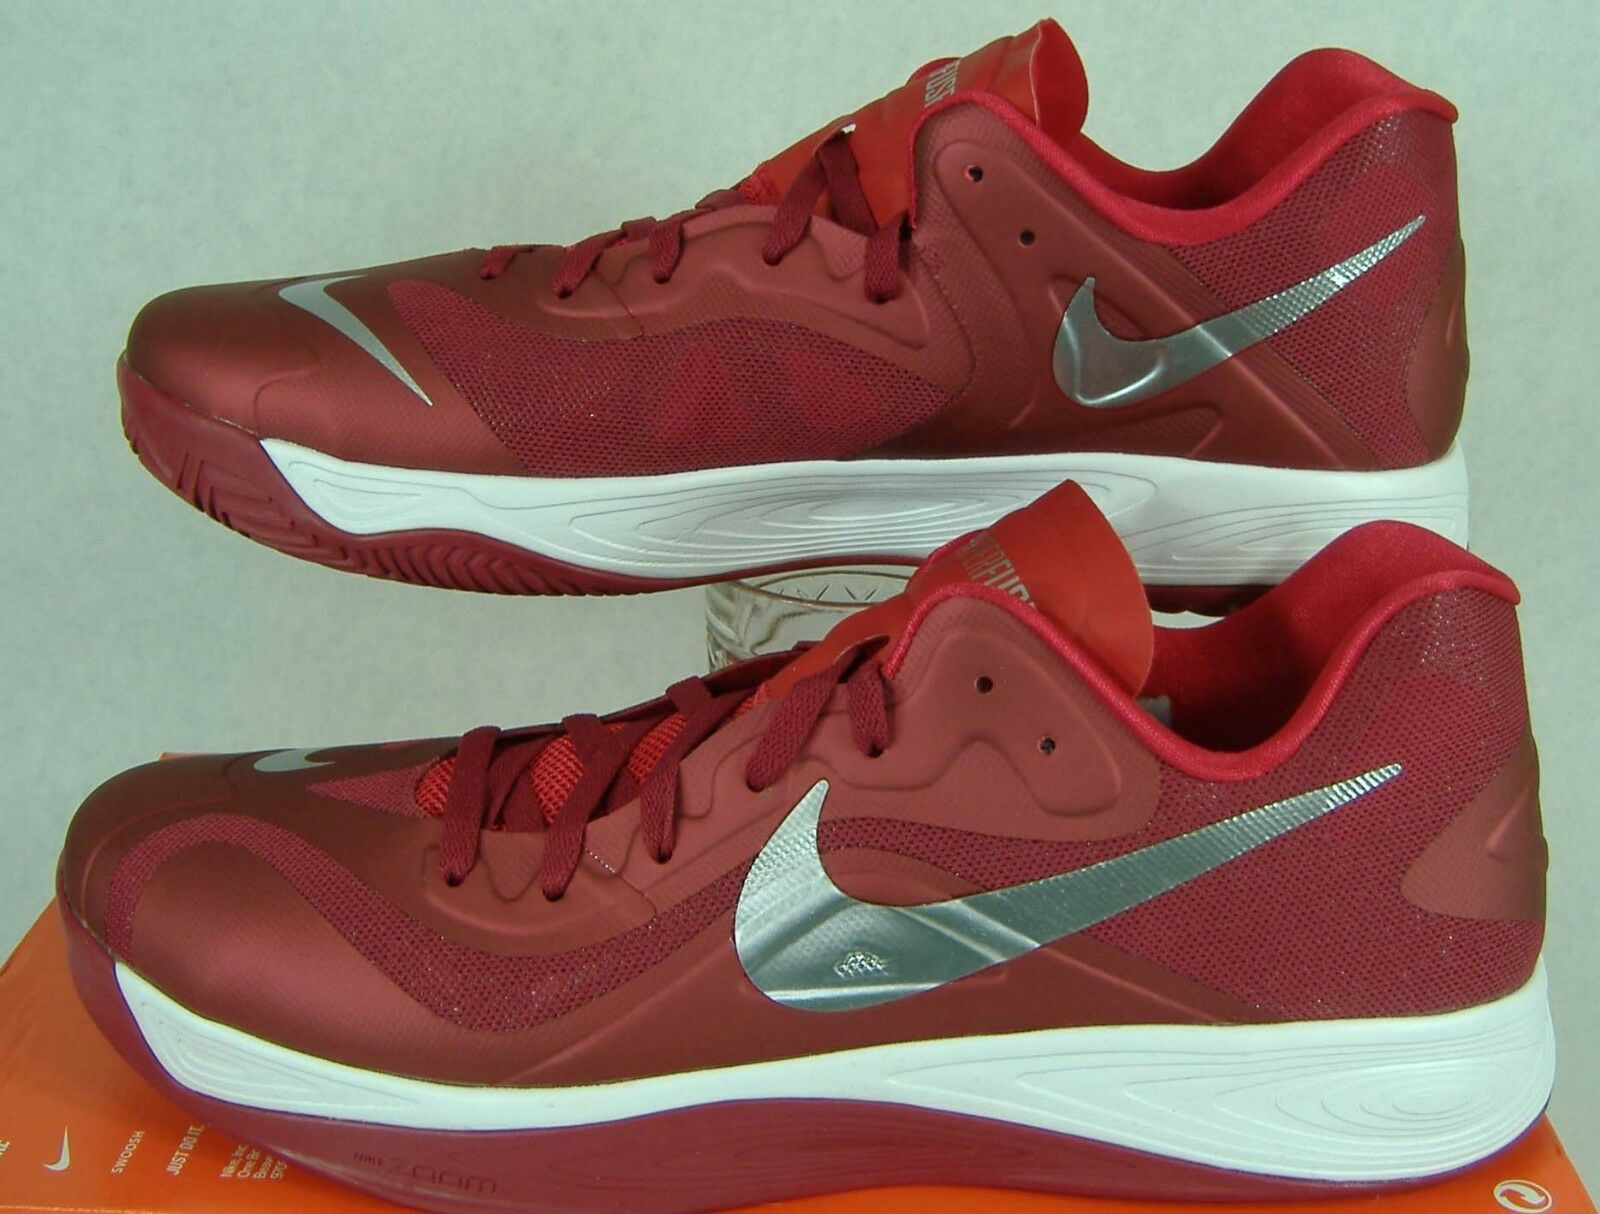 New Mens 17.5 NIKE Hyperfuse Low TB Varsity Crimson shoes  616620-603